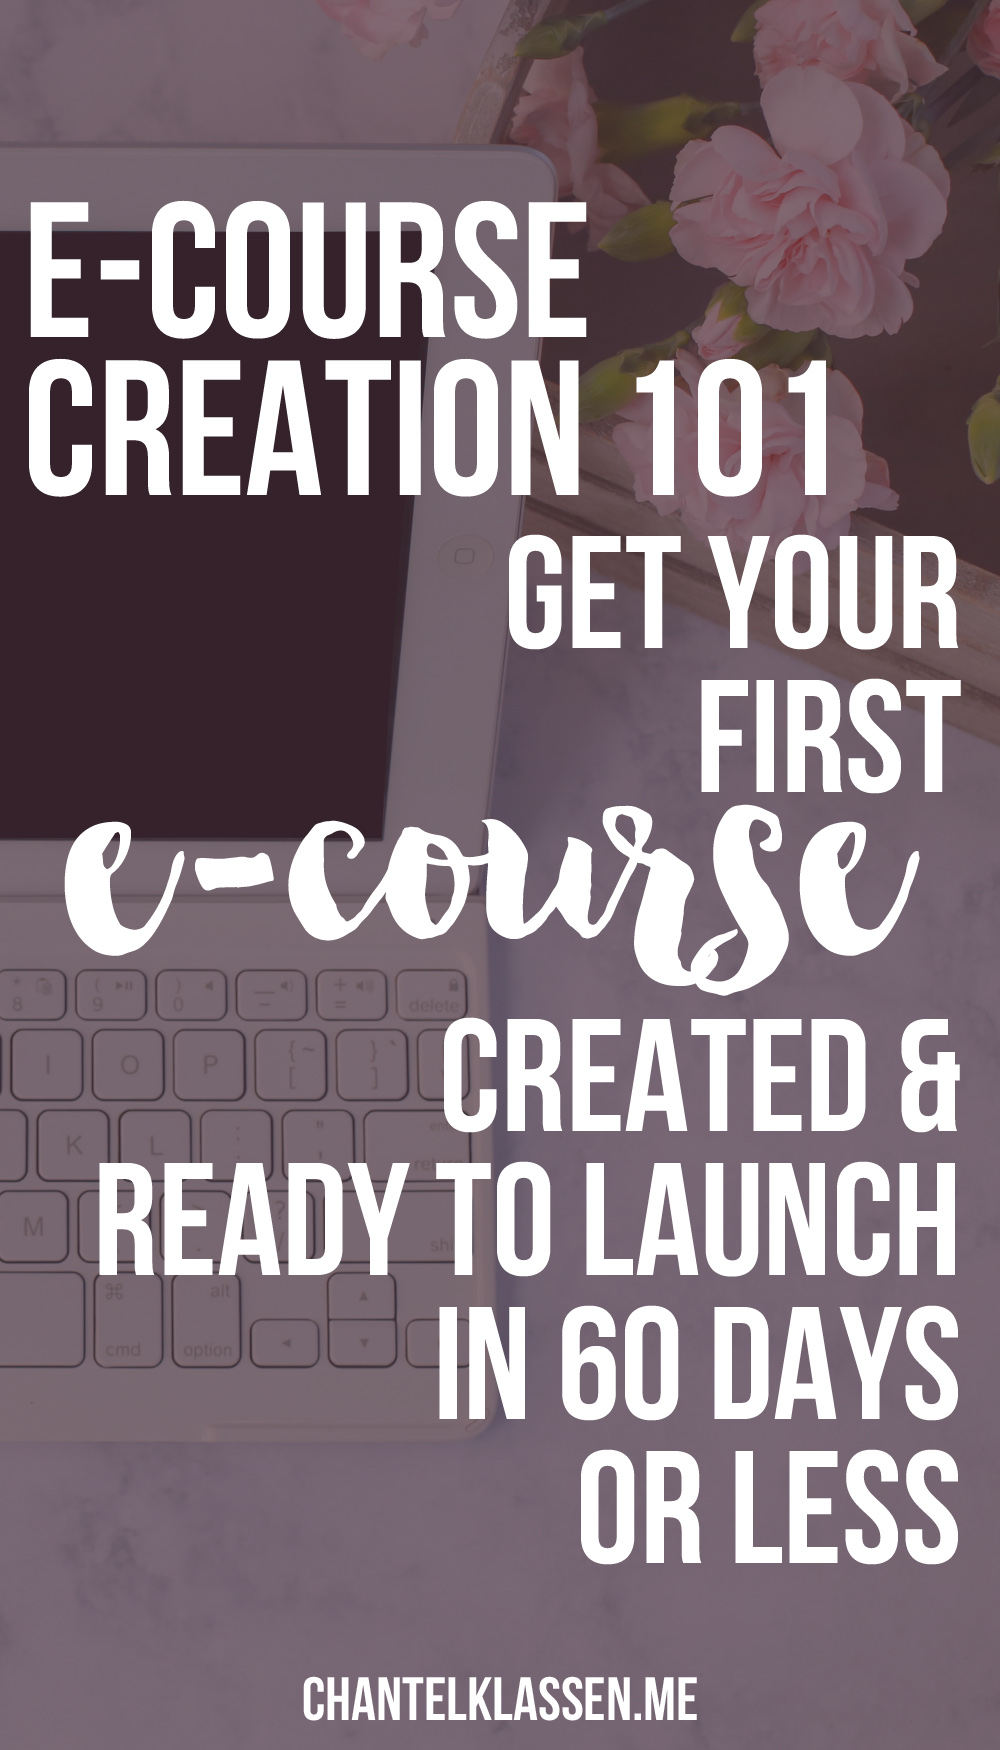 E-Course Creation 101 - how to go from nothing to a launched course in 60 days or less.